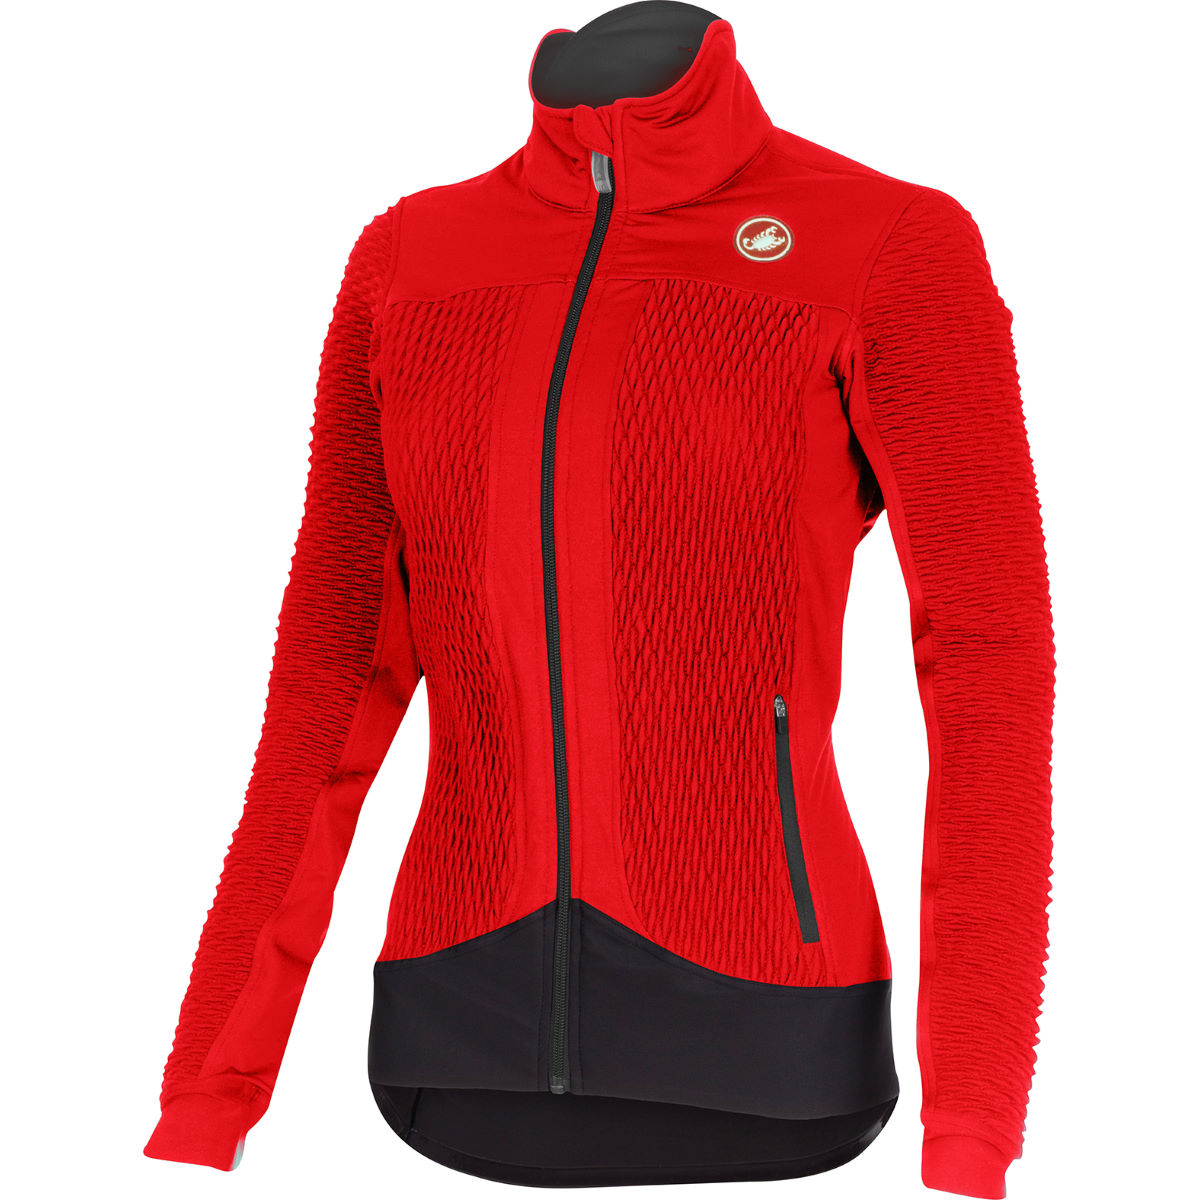 Castelli Women's Elemento 2 7x(Air) Jacket - Large Red